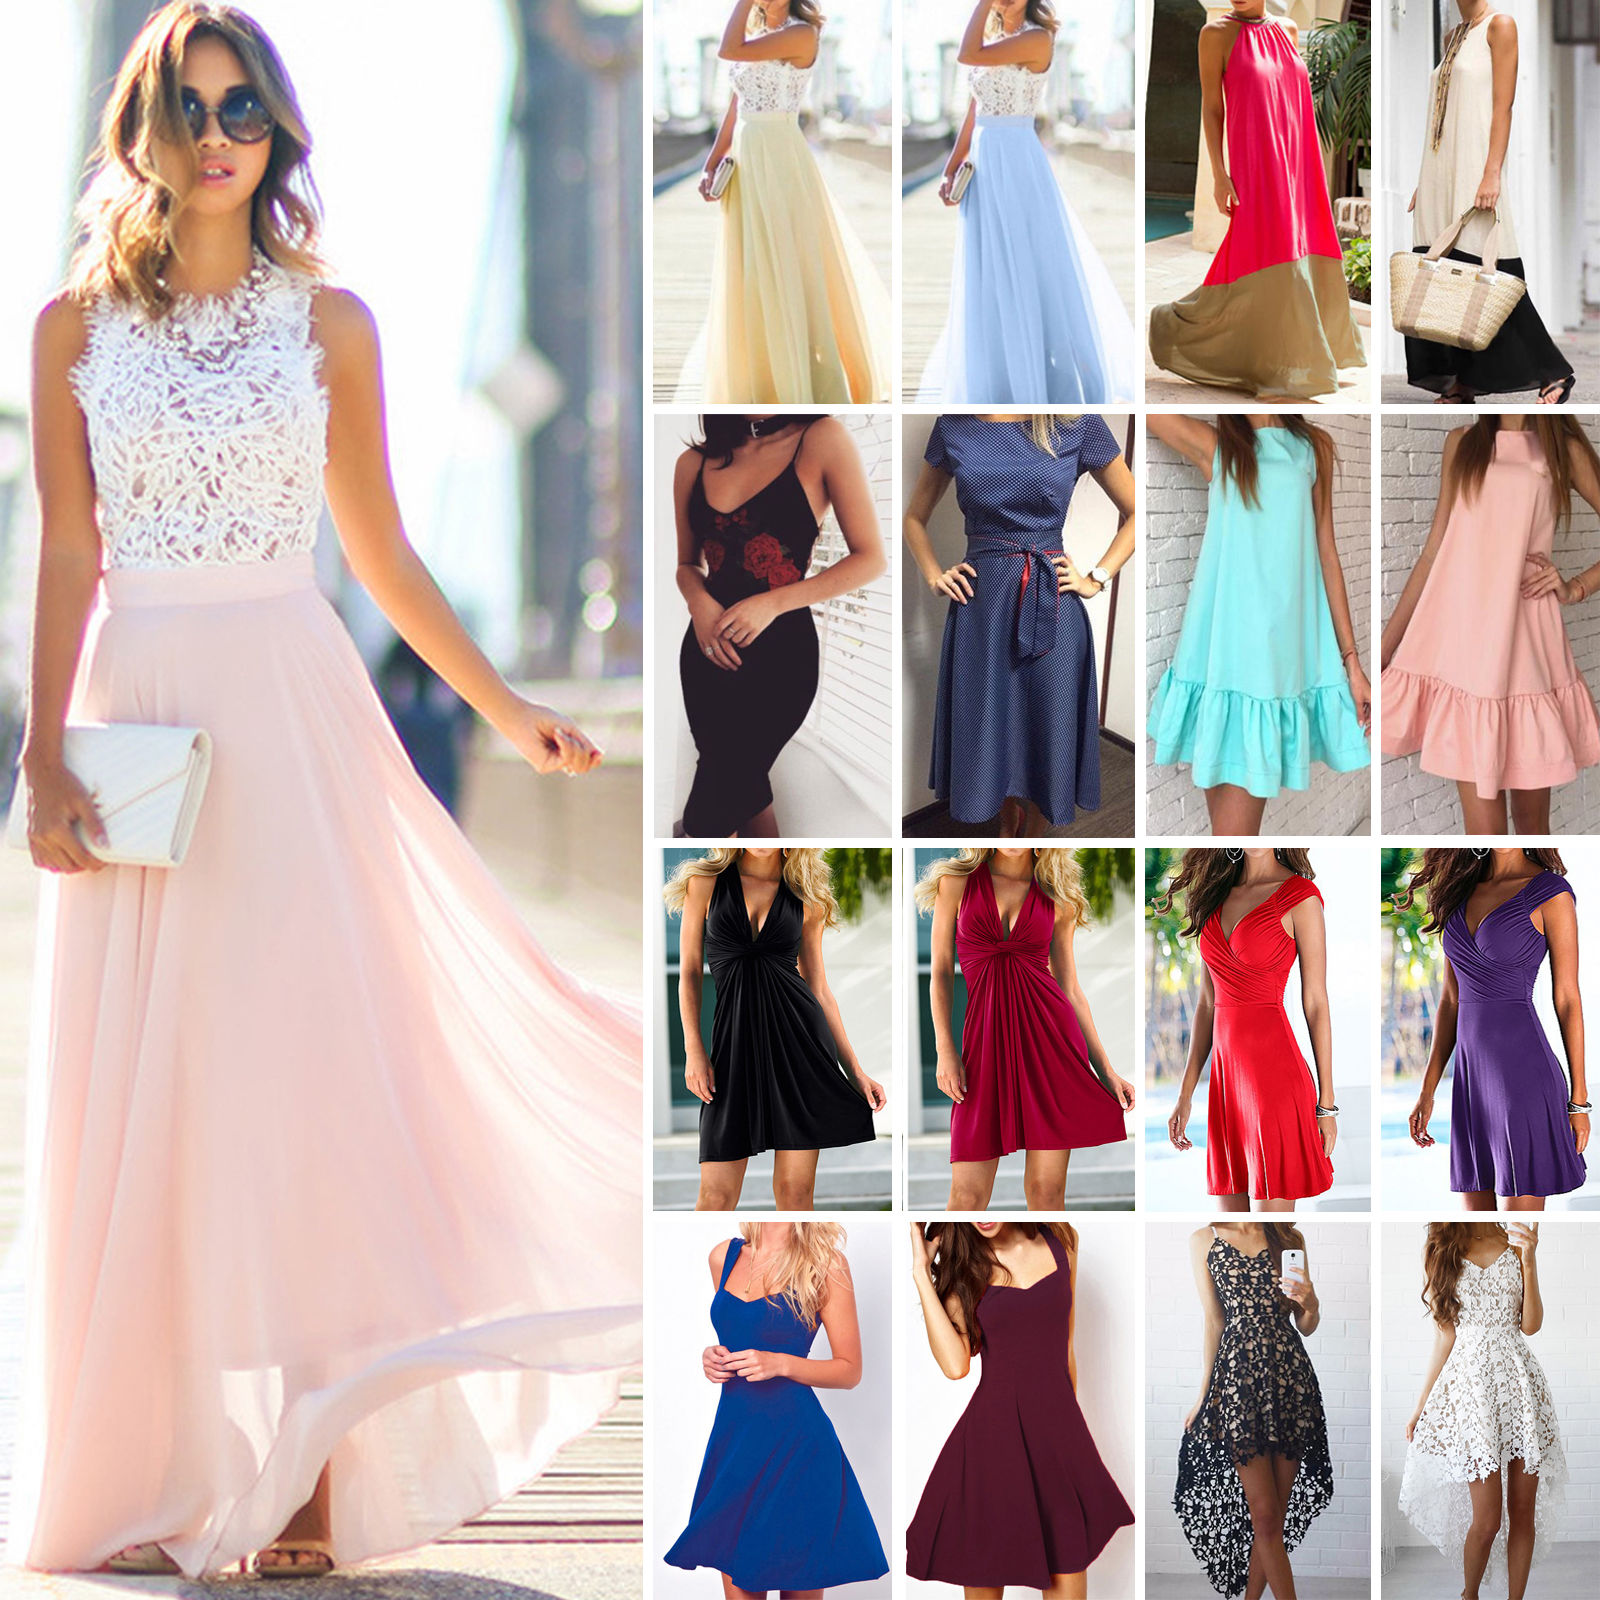 cd1fe7d8fc29 Women Long Maxi Dress Cocktail Evening Party Prom Ball Wedding Summer Beach  Boho